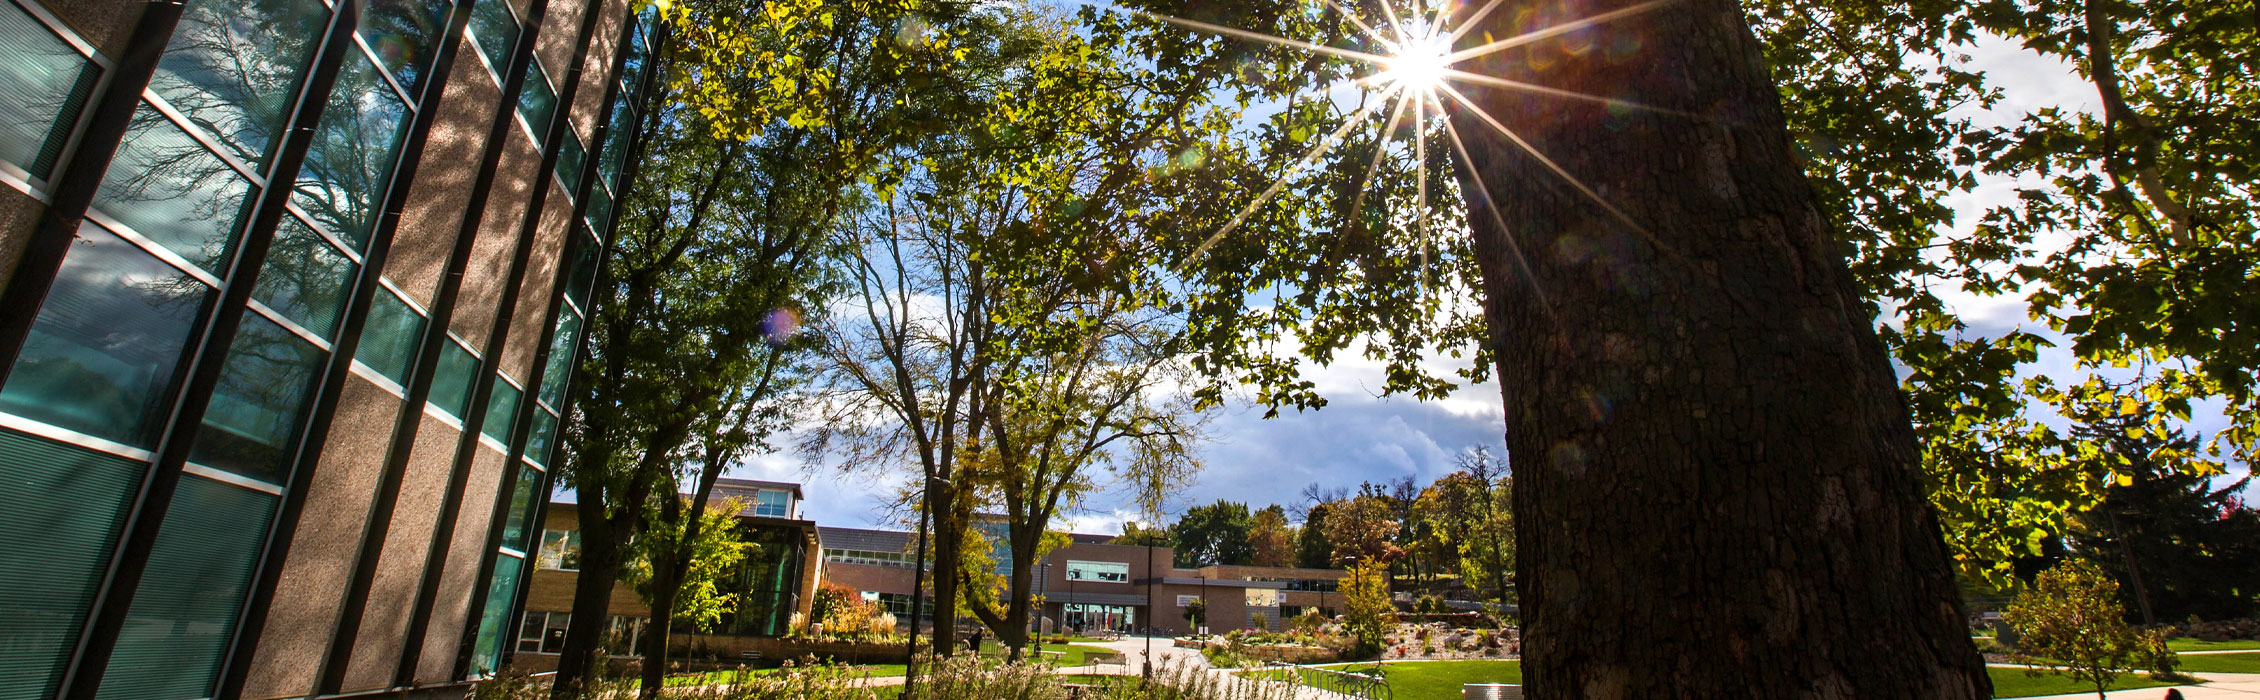 Sun shining through foliage, overlooking the university mall.